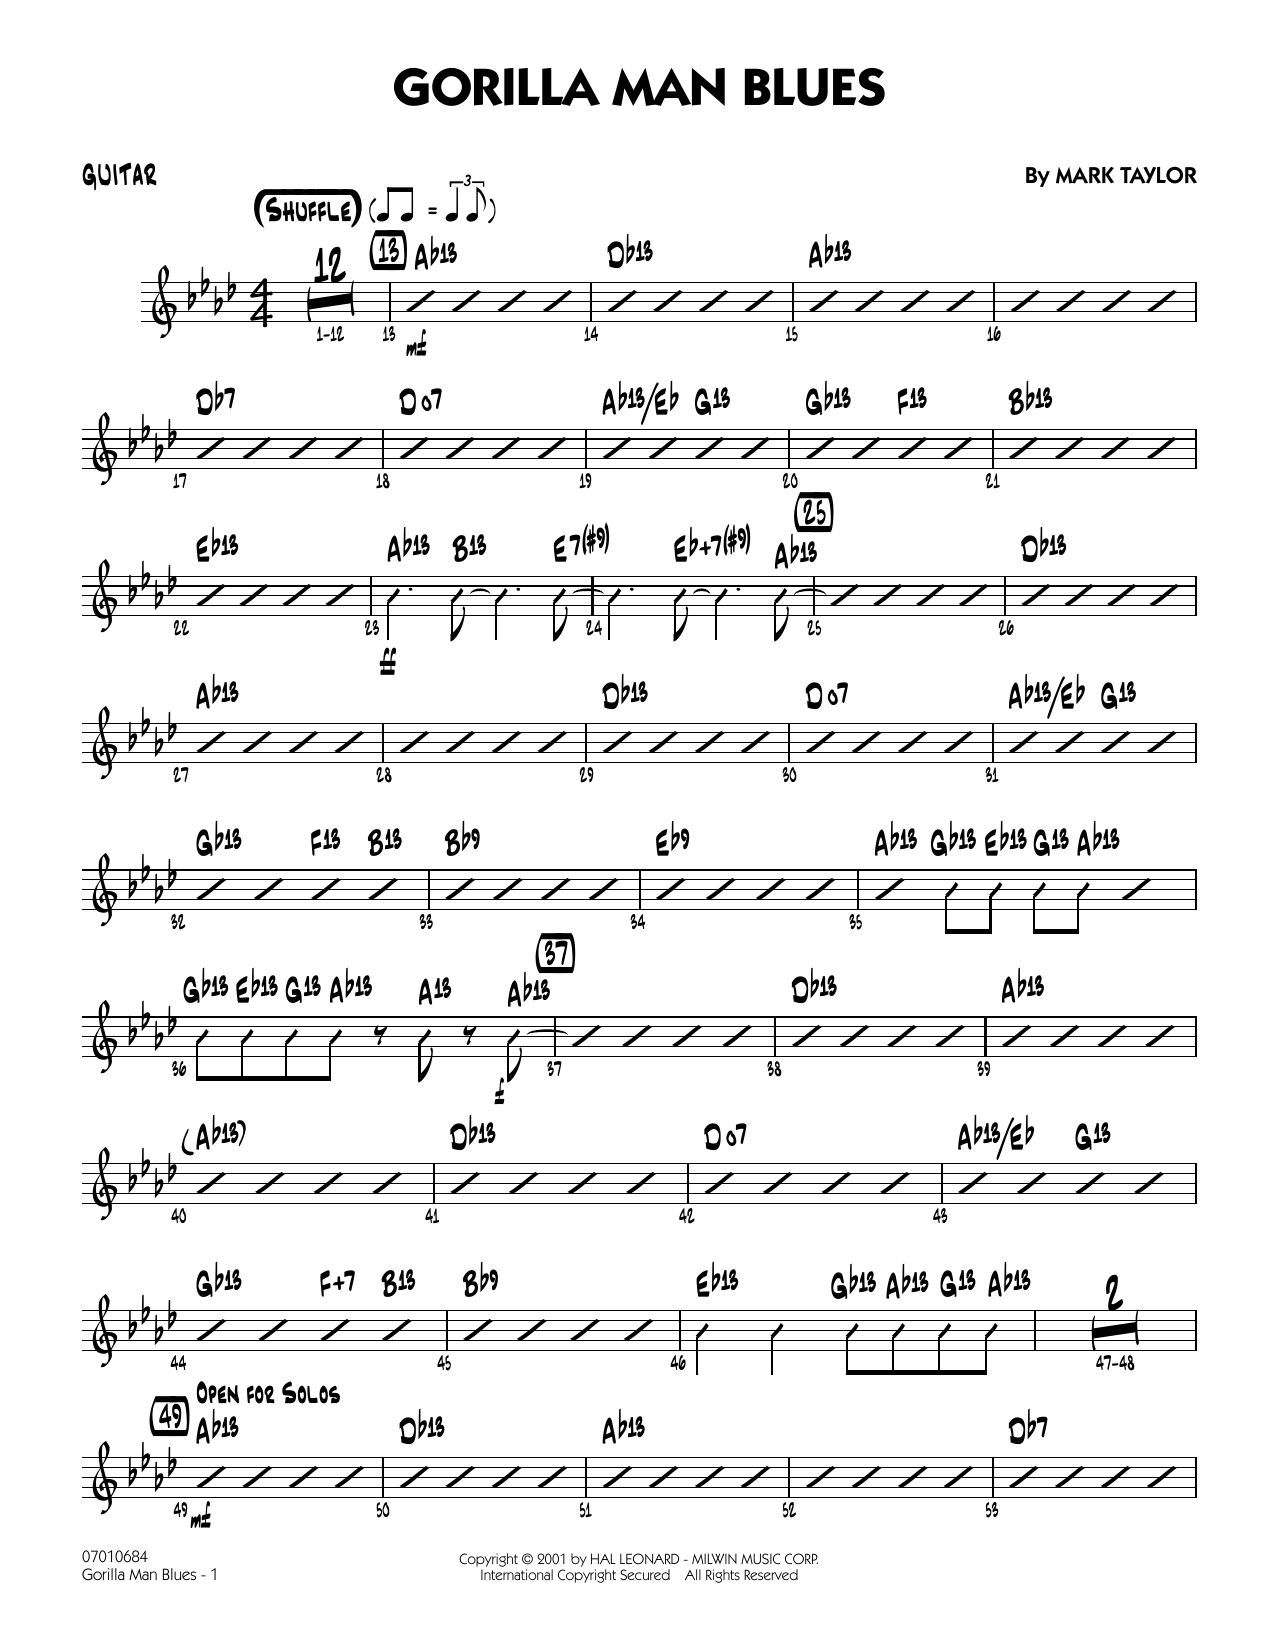 Gorilla Man Blues - Guitar Sheet Music